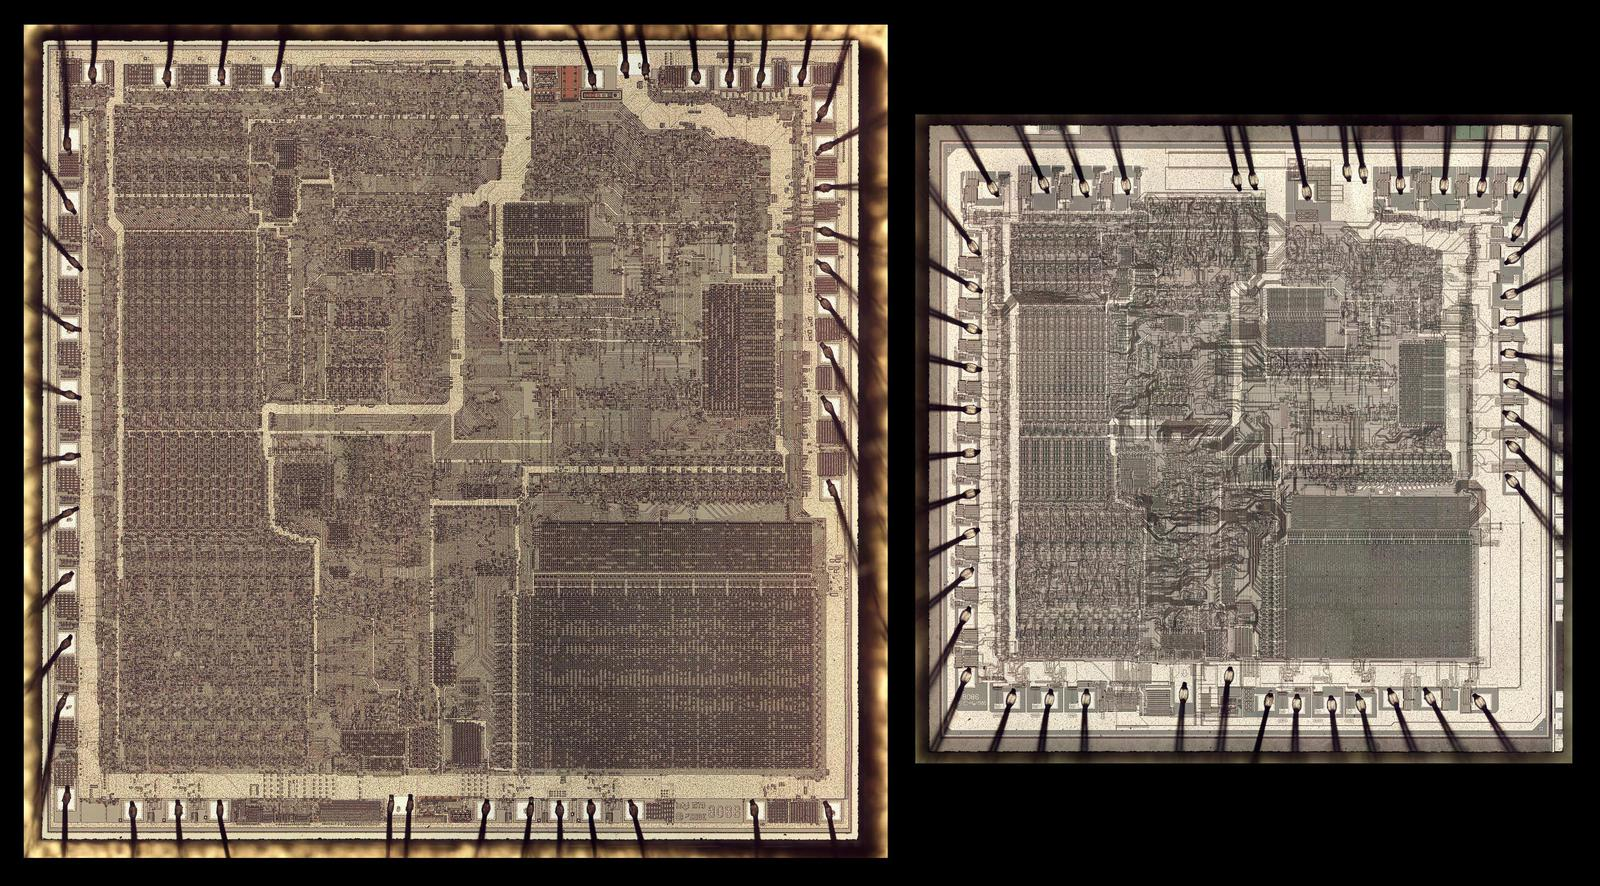 Two versions of the 8086 die, at the same scale. The bond wires are connected to pads around the edge of the die.